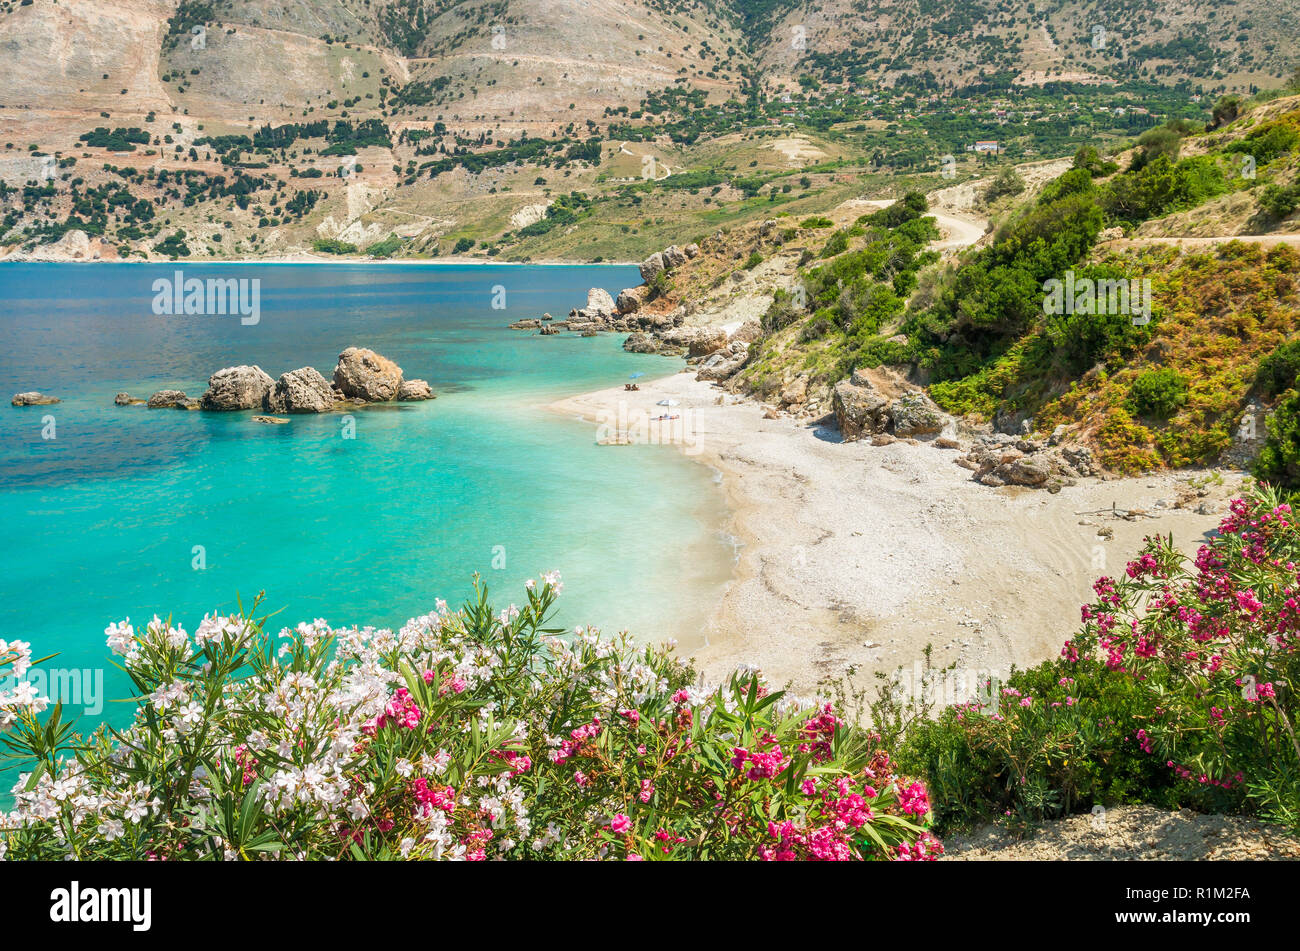 Vouti beach, Kefalonia island, Greece. People relaxing at the beach. The beach is surrounded by flowers. - Stock Image